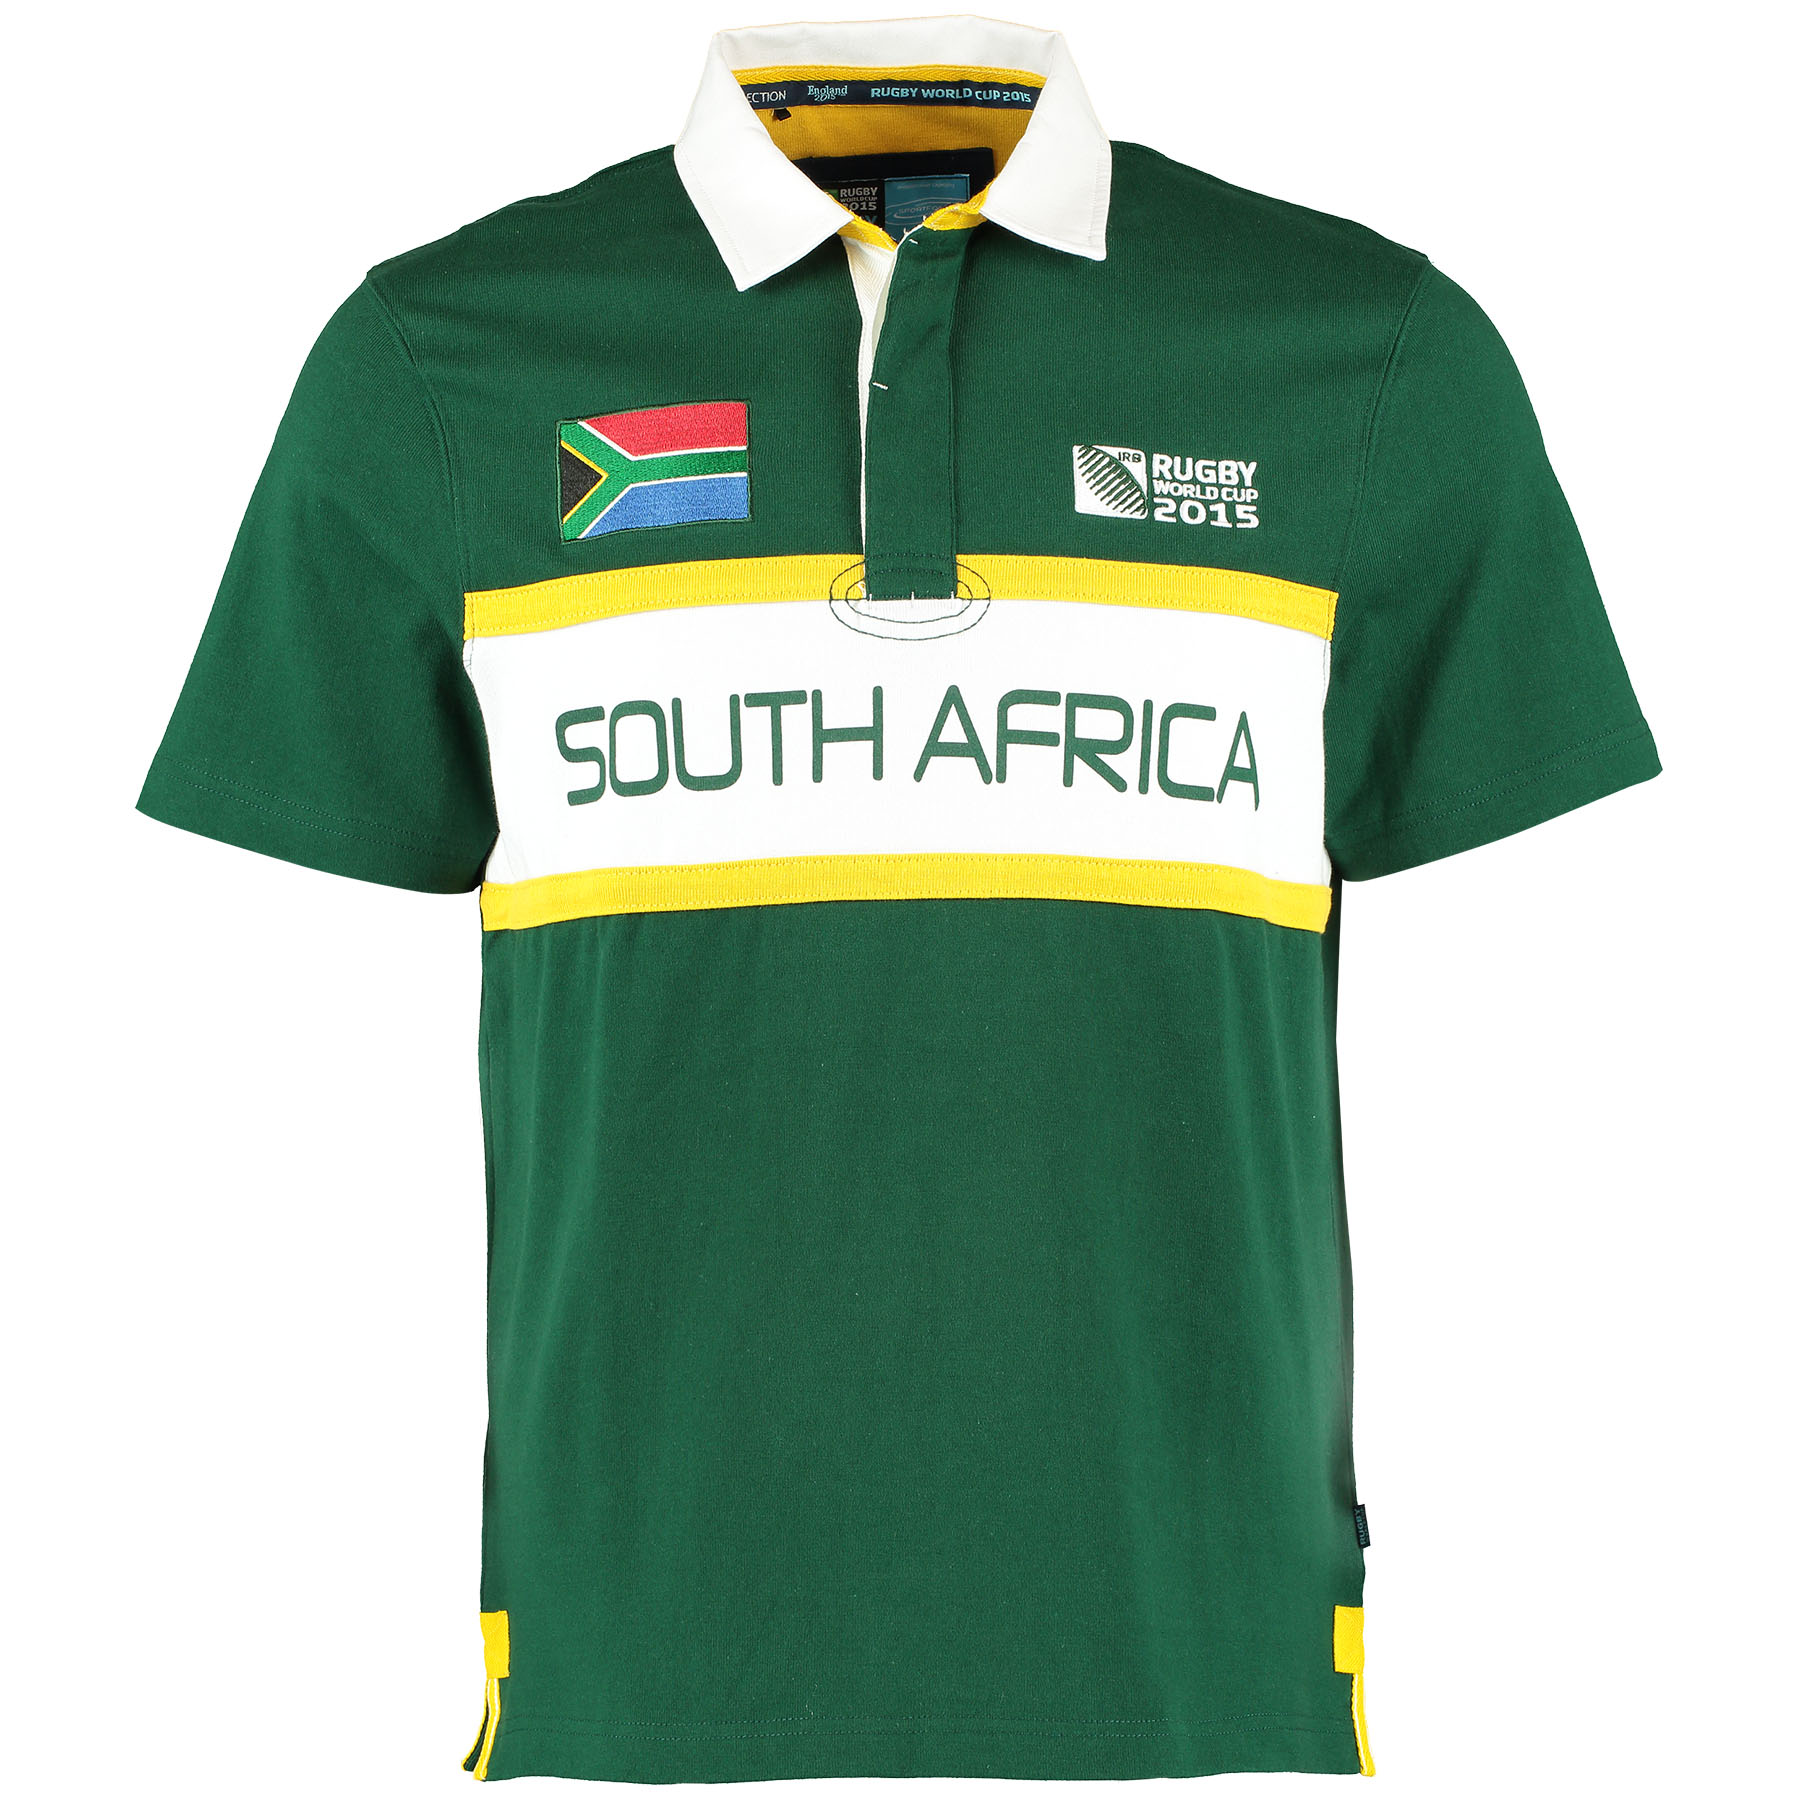 Rugby World Cup 2015 South Africa Rugby Shirt – Short Sleeved Green